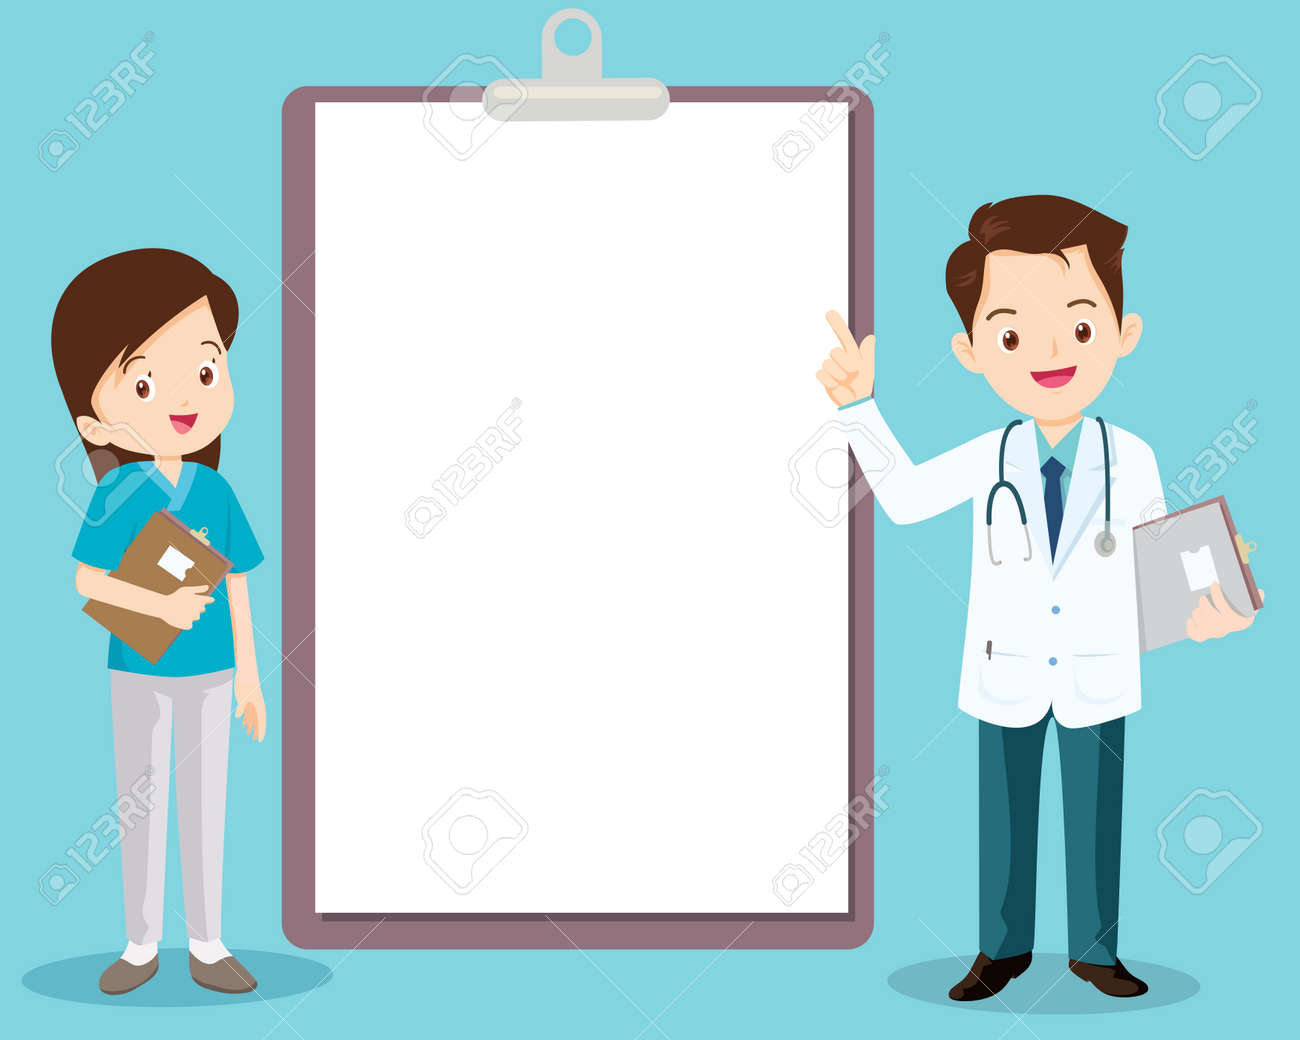 doctor and nurse standing next to information board the can place your text ,Doctor with medical report on clipboard - 166467586